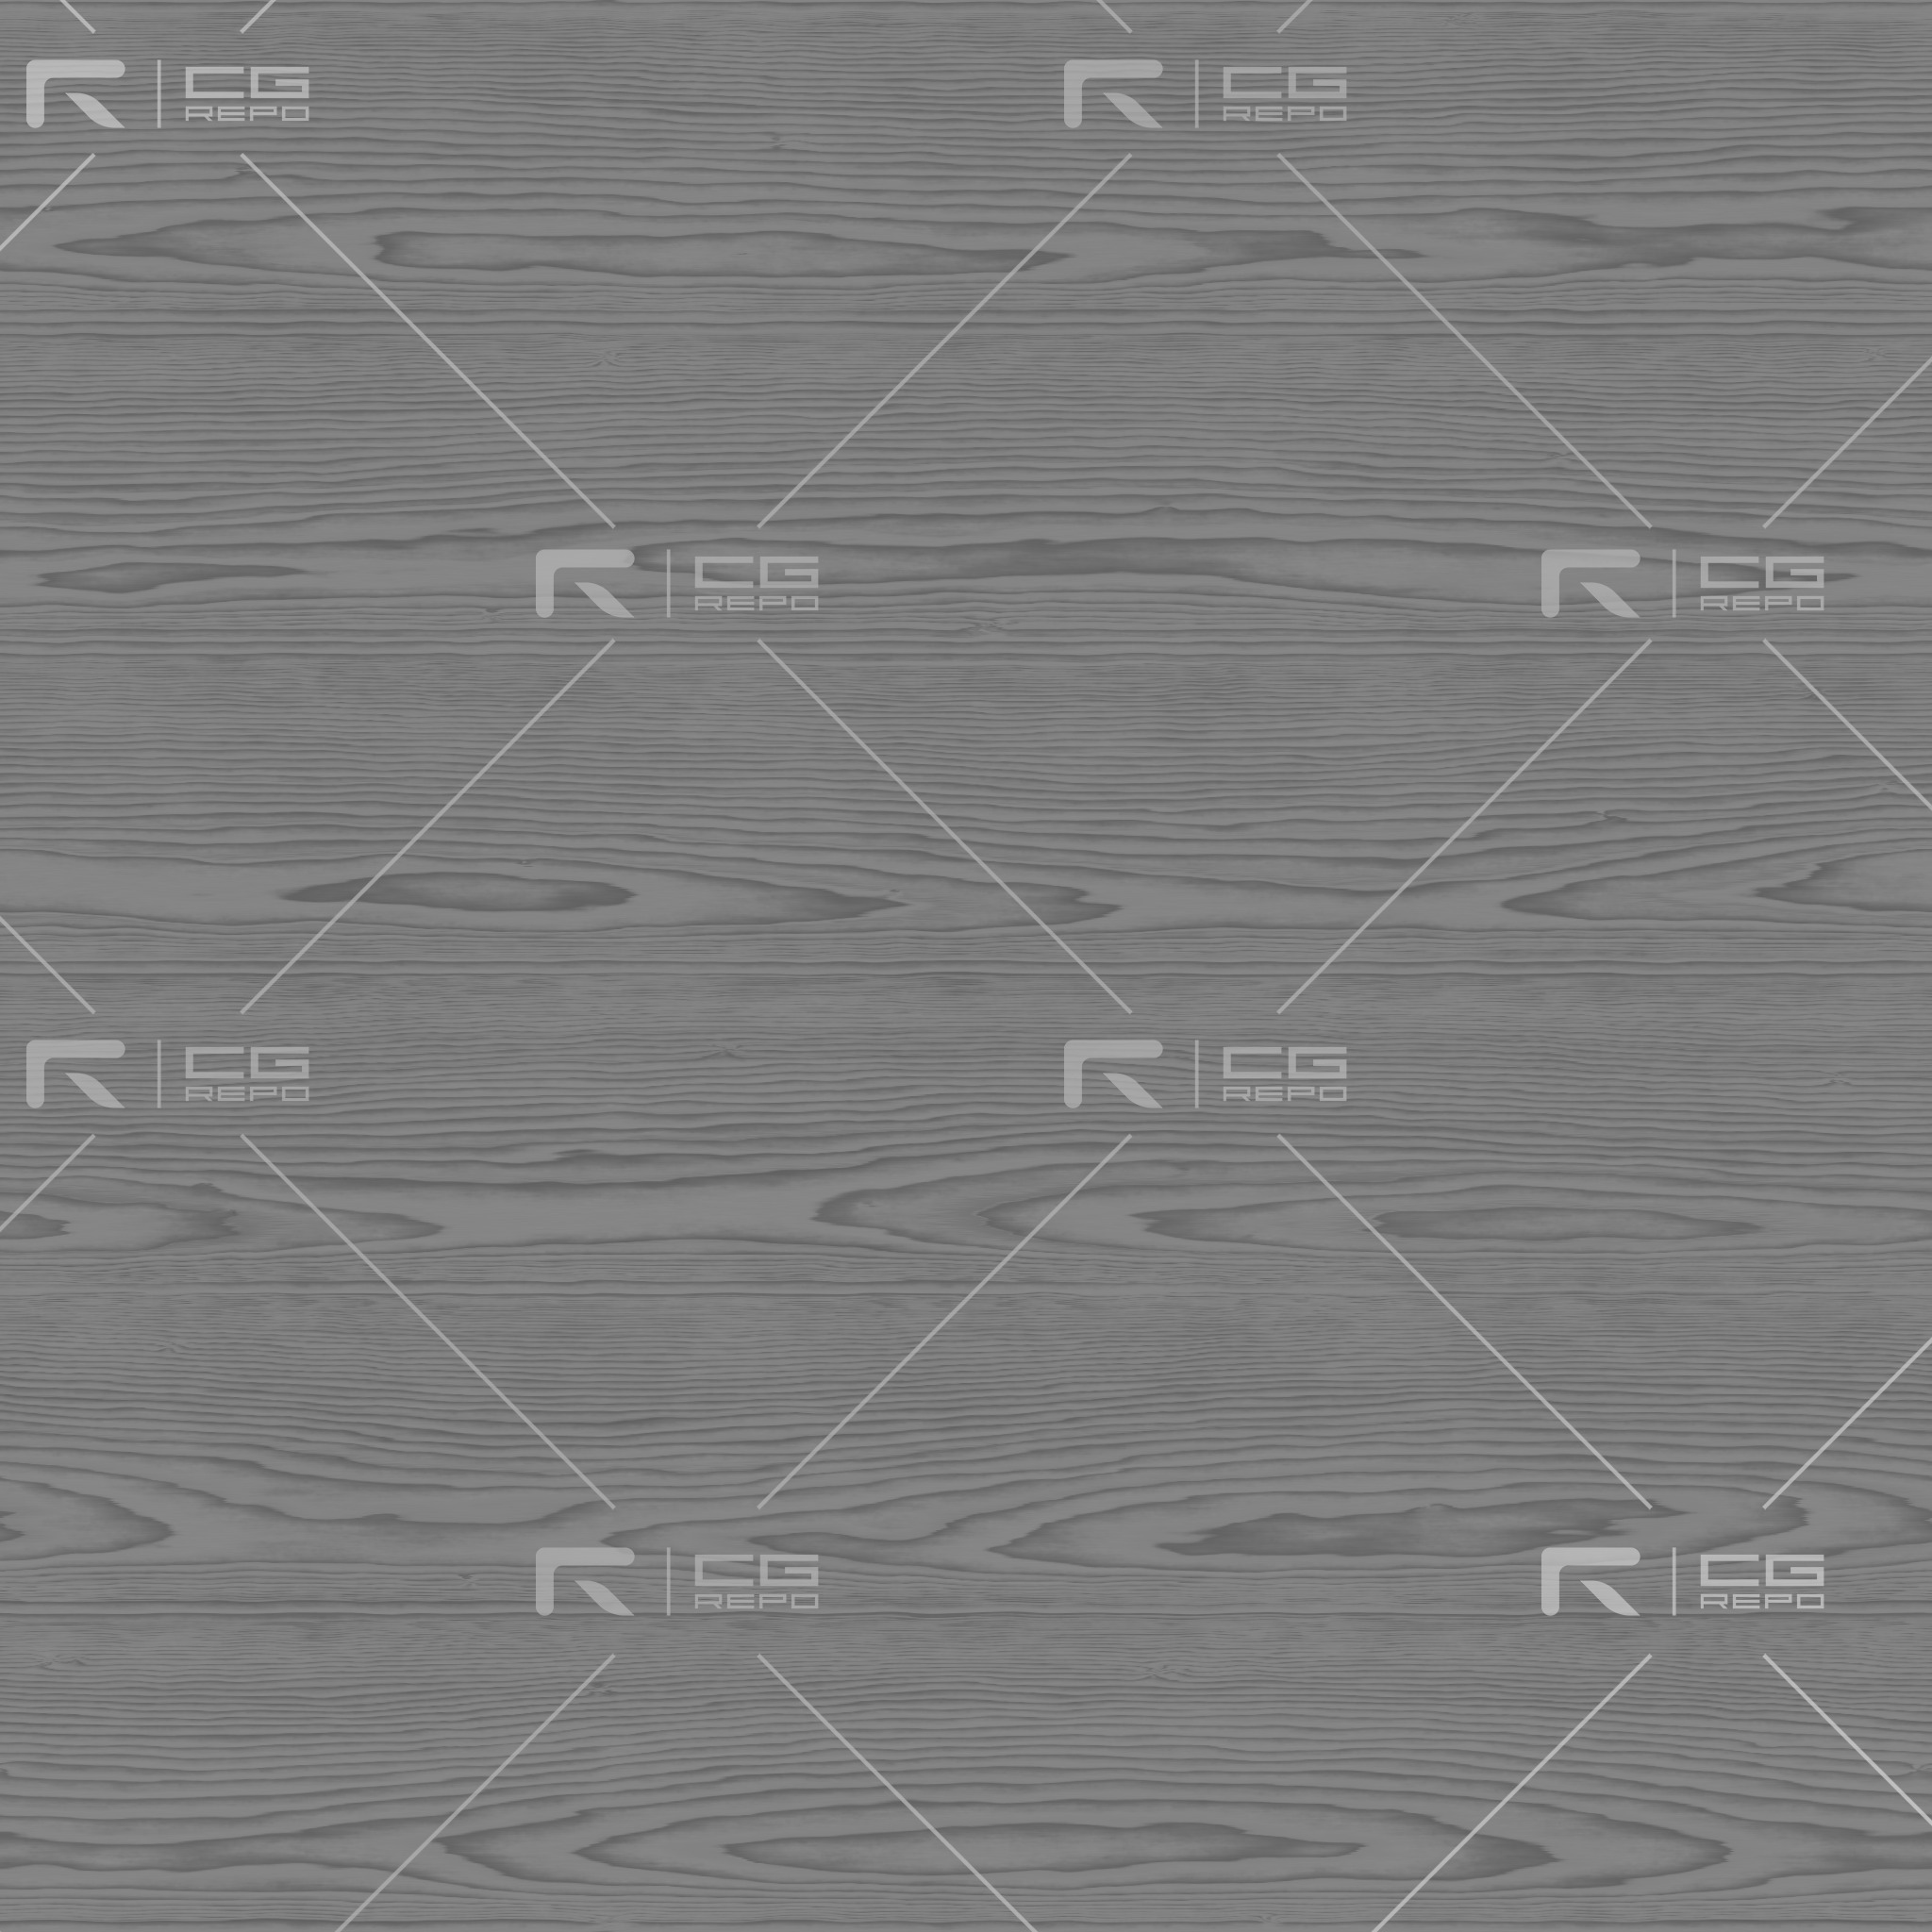 Douglas Fir - Cathedral Shape (Crown) Roughness Texture